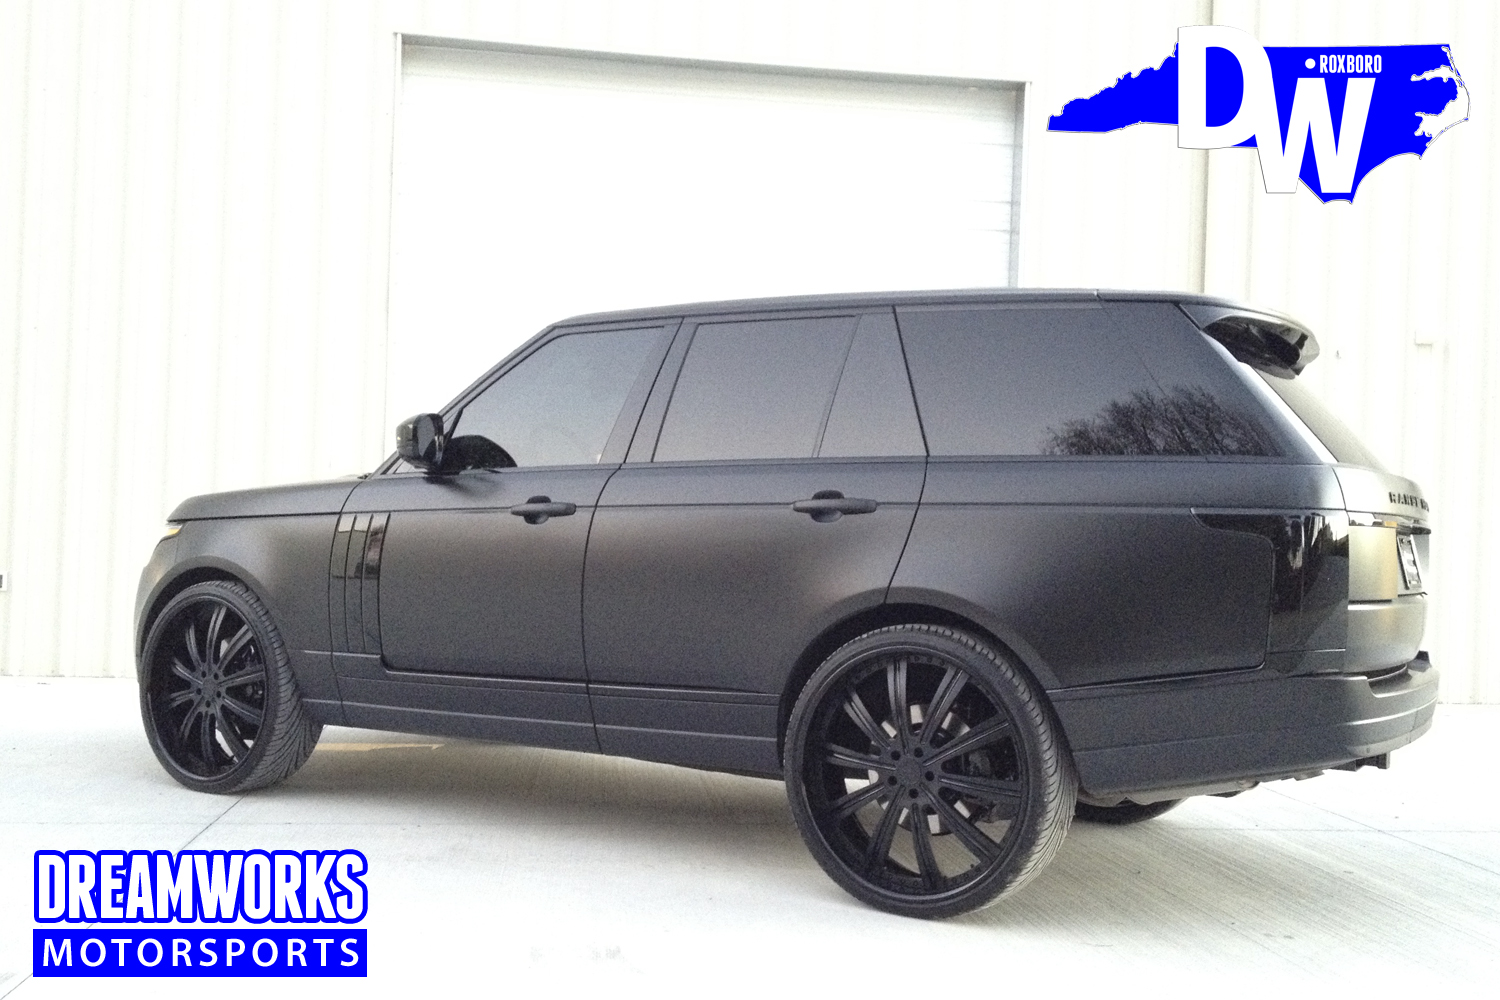 Wesley-Mathews-Range-Rover-Matte-Wrapped-By-Dreamworks-Motorsports-20.jpg